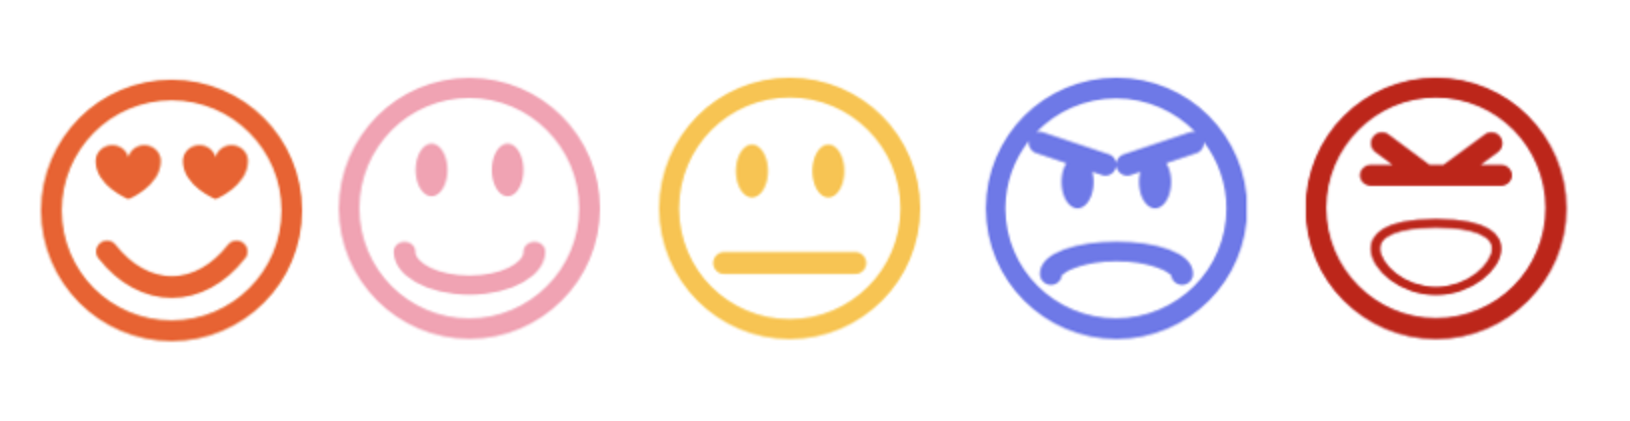 Sentiment analysis on reviews